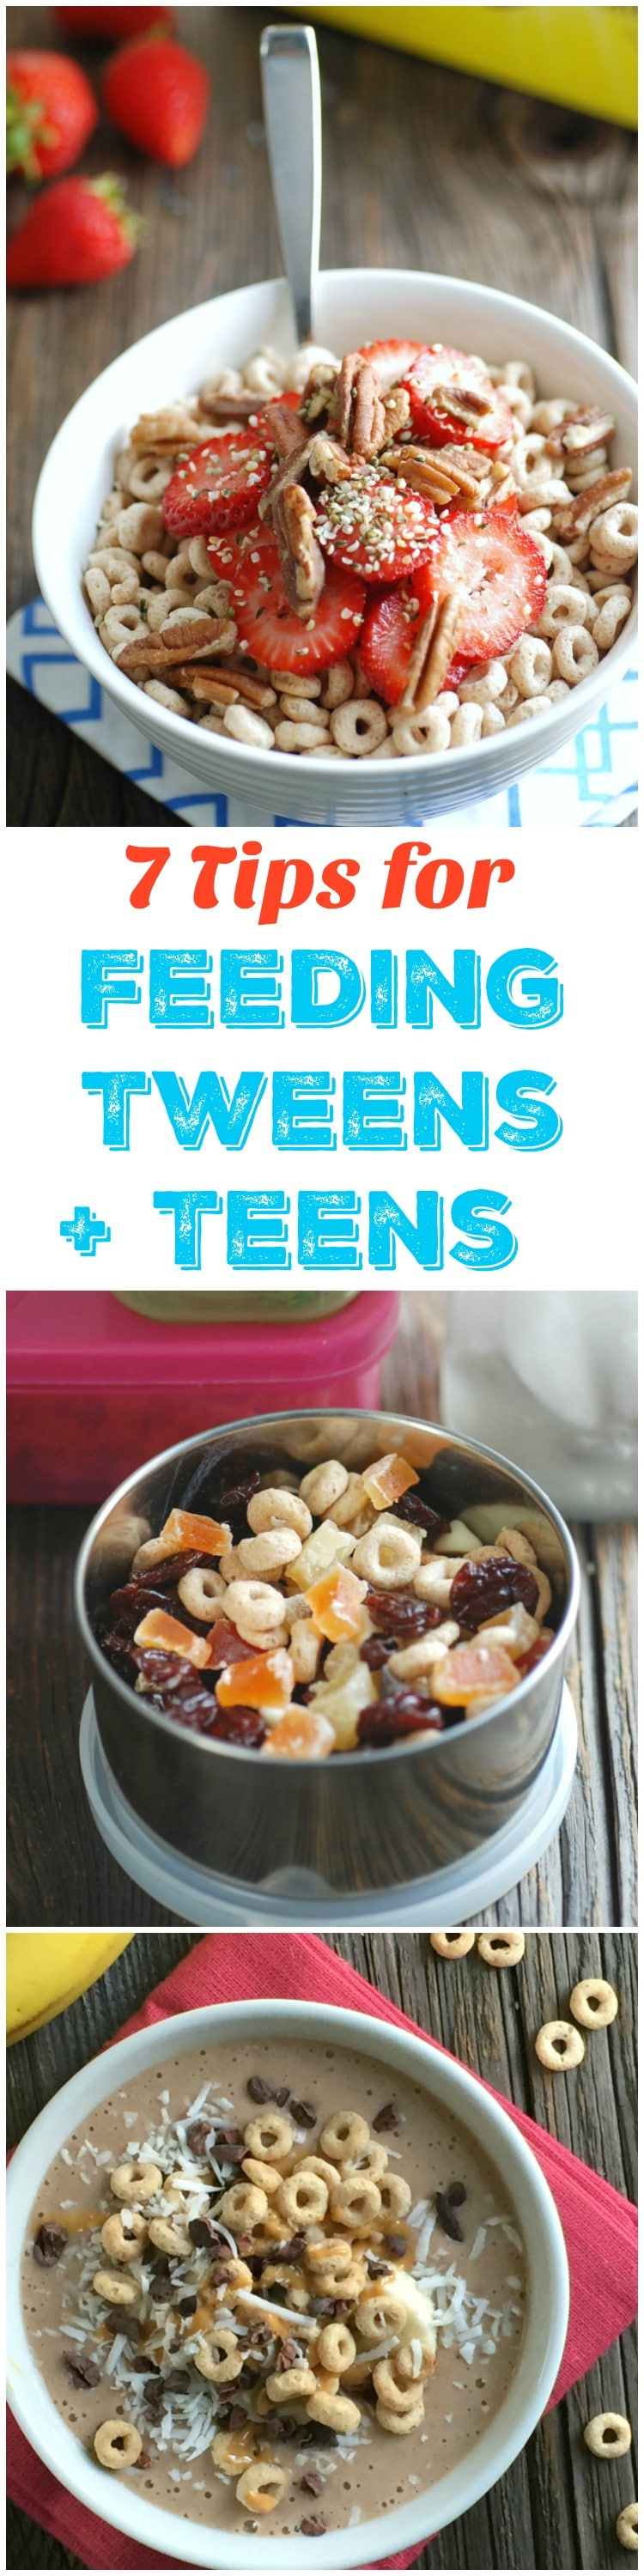 7 Tips for Feeding Tweens and Teens